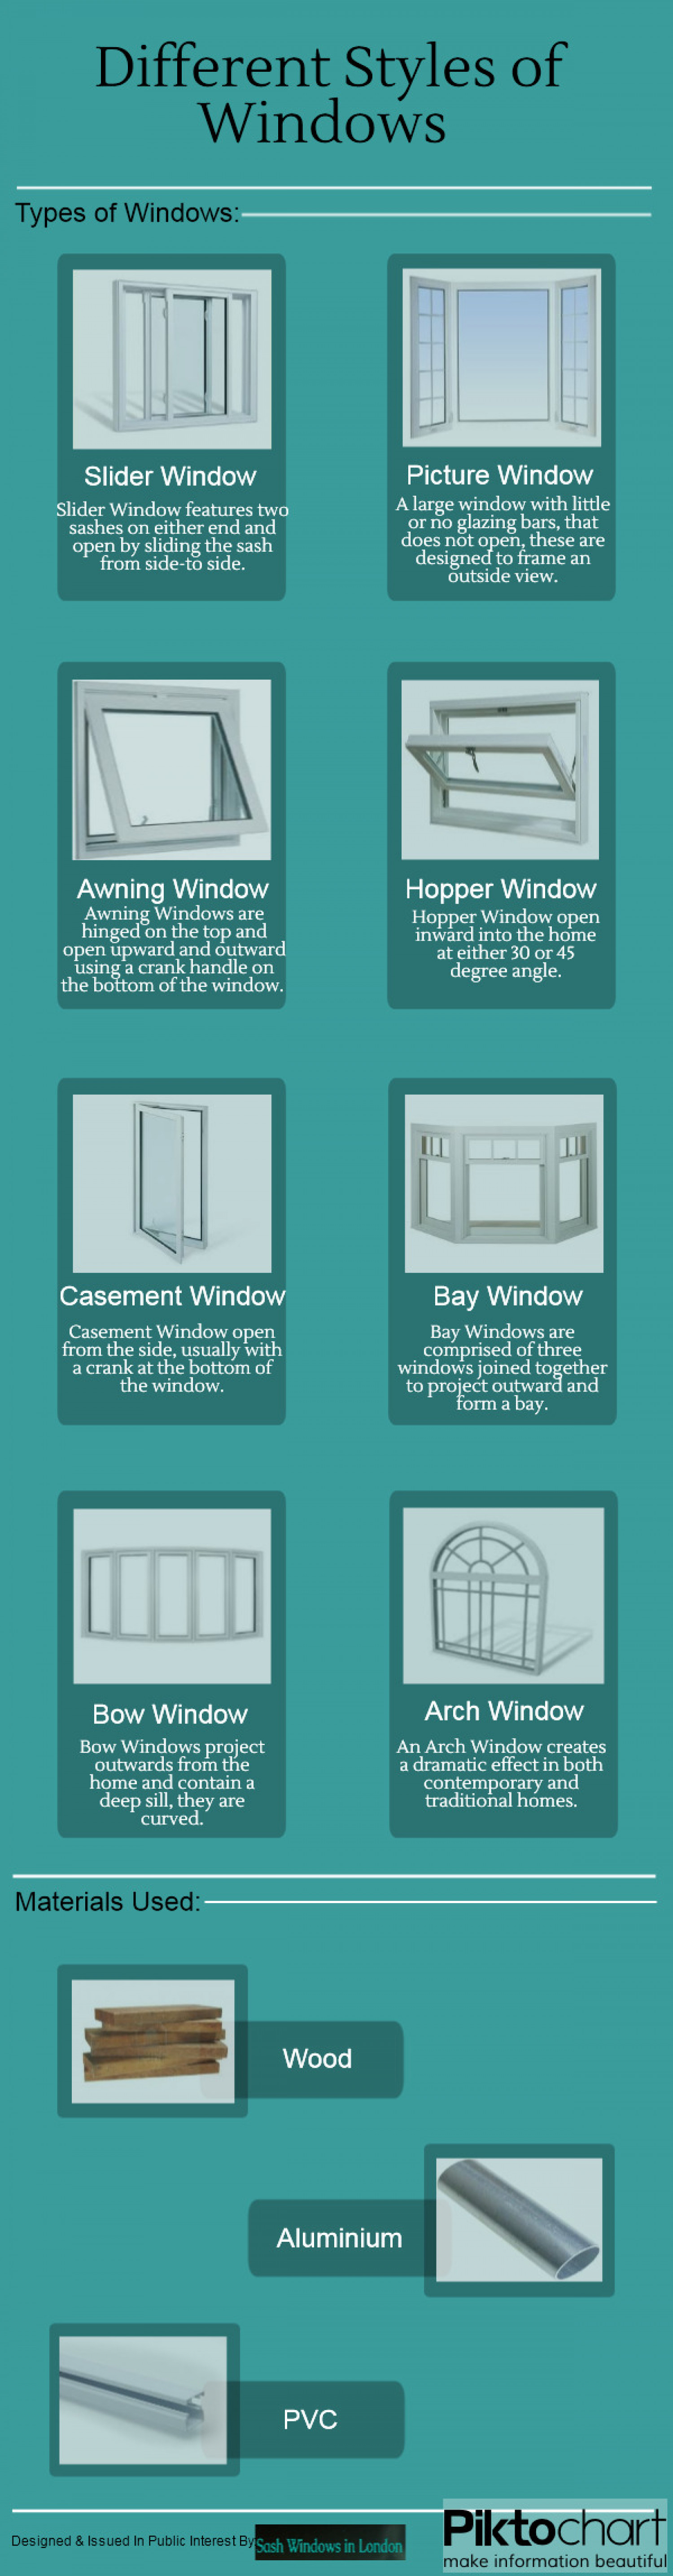 Diffrent Styles of Windows Infographic